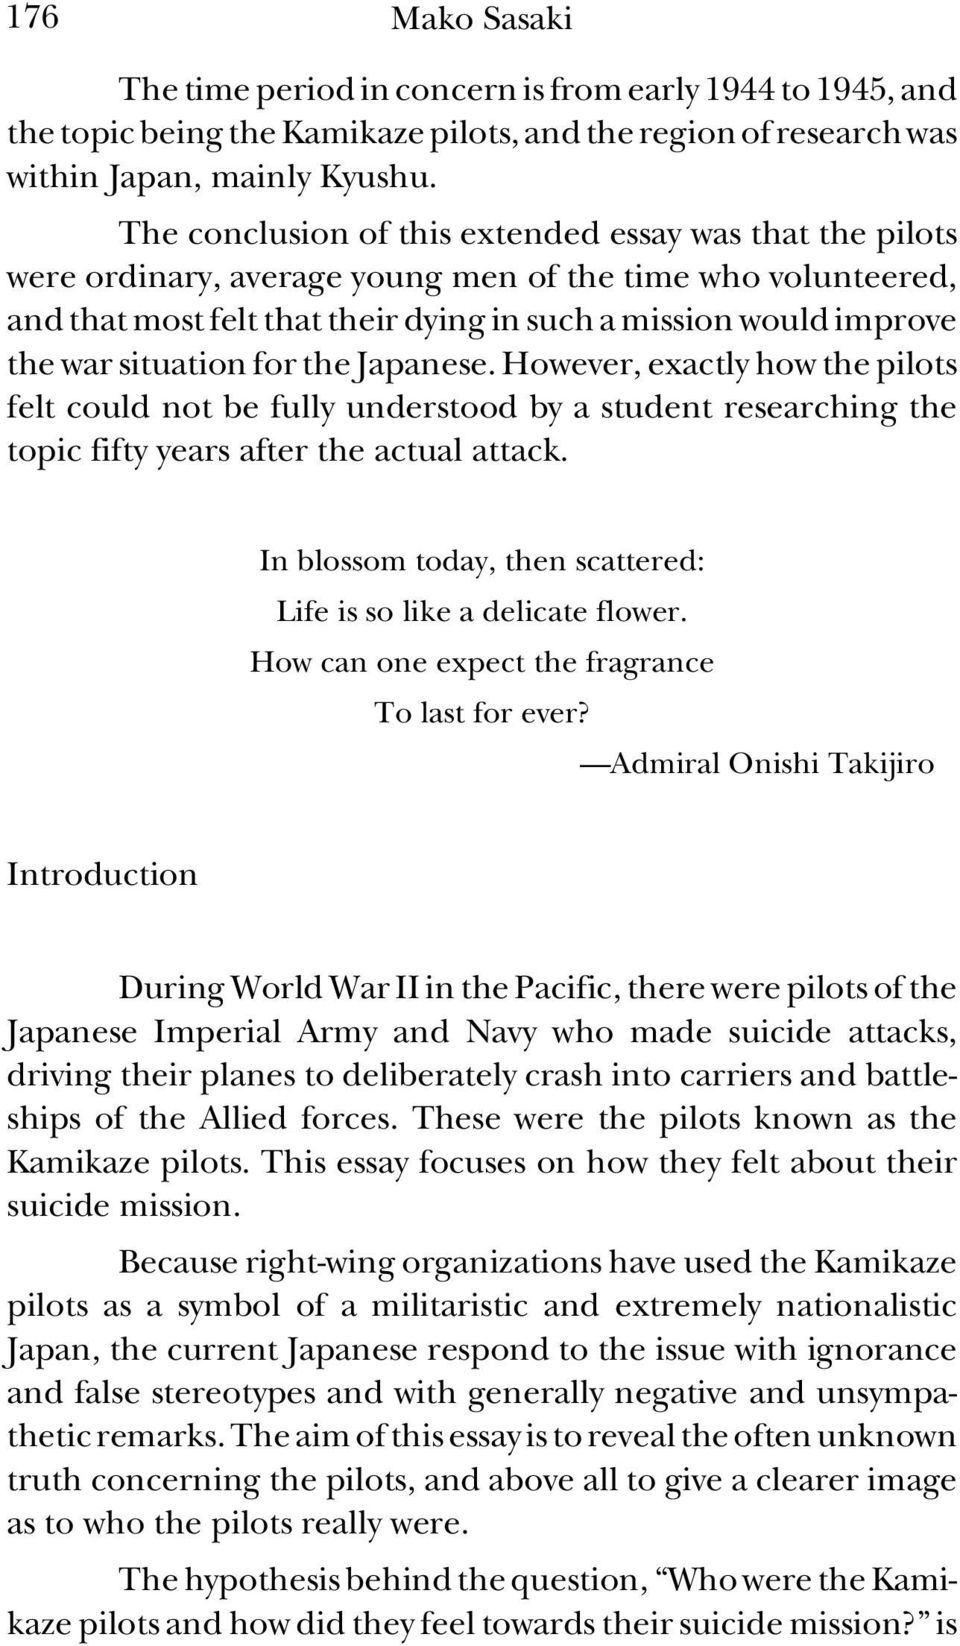 situation for the Japanese. However, exactly how the pilots felt could not be fully understood by a student researching the topic fifty years after the actual attack.